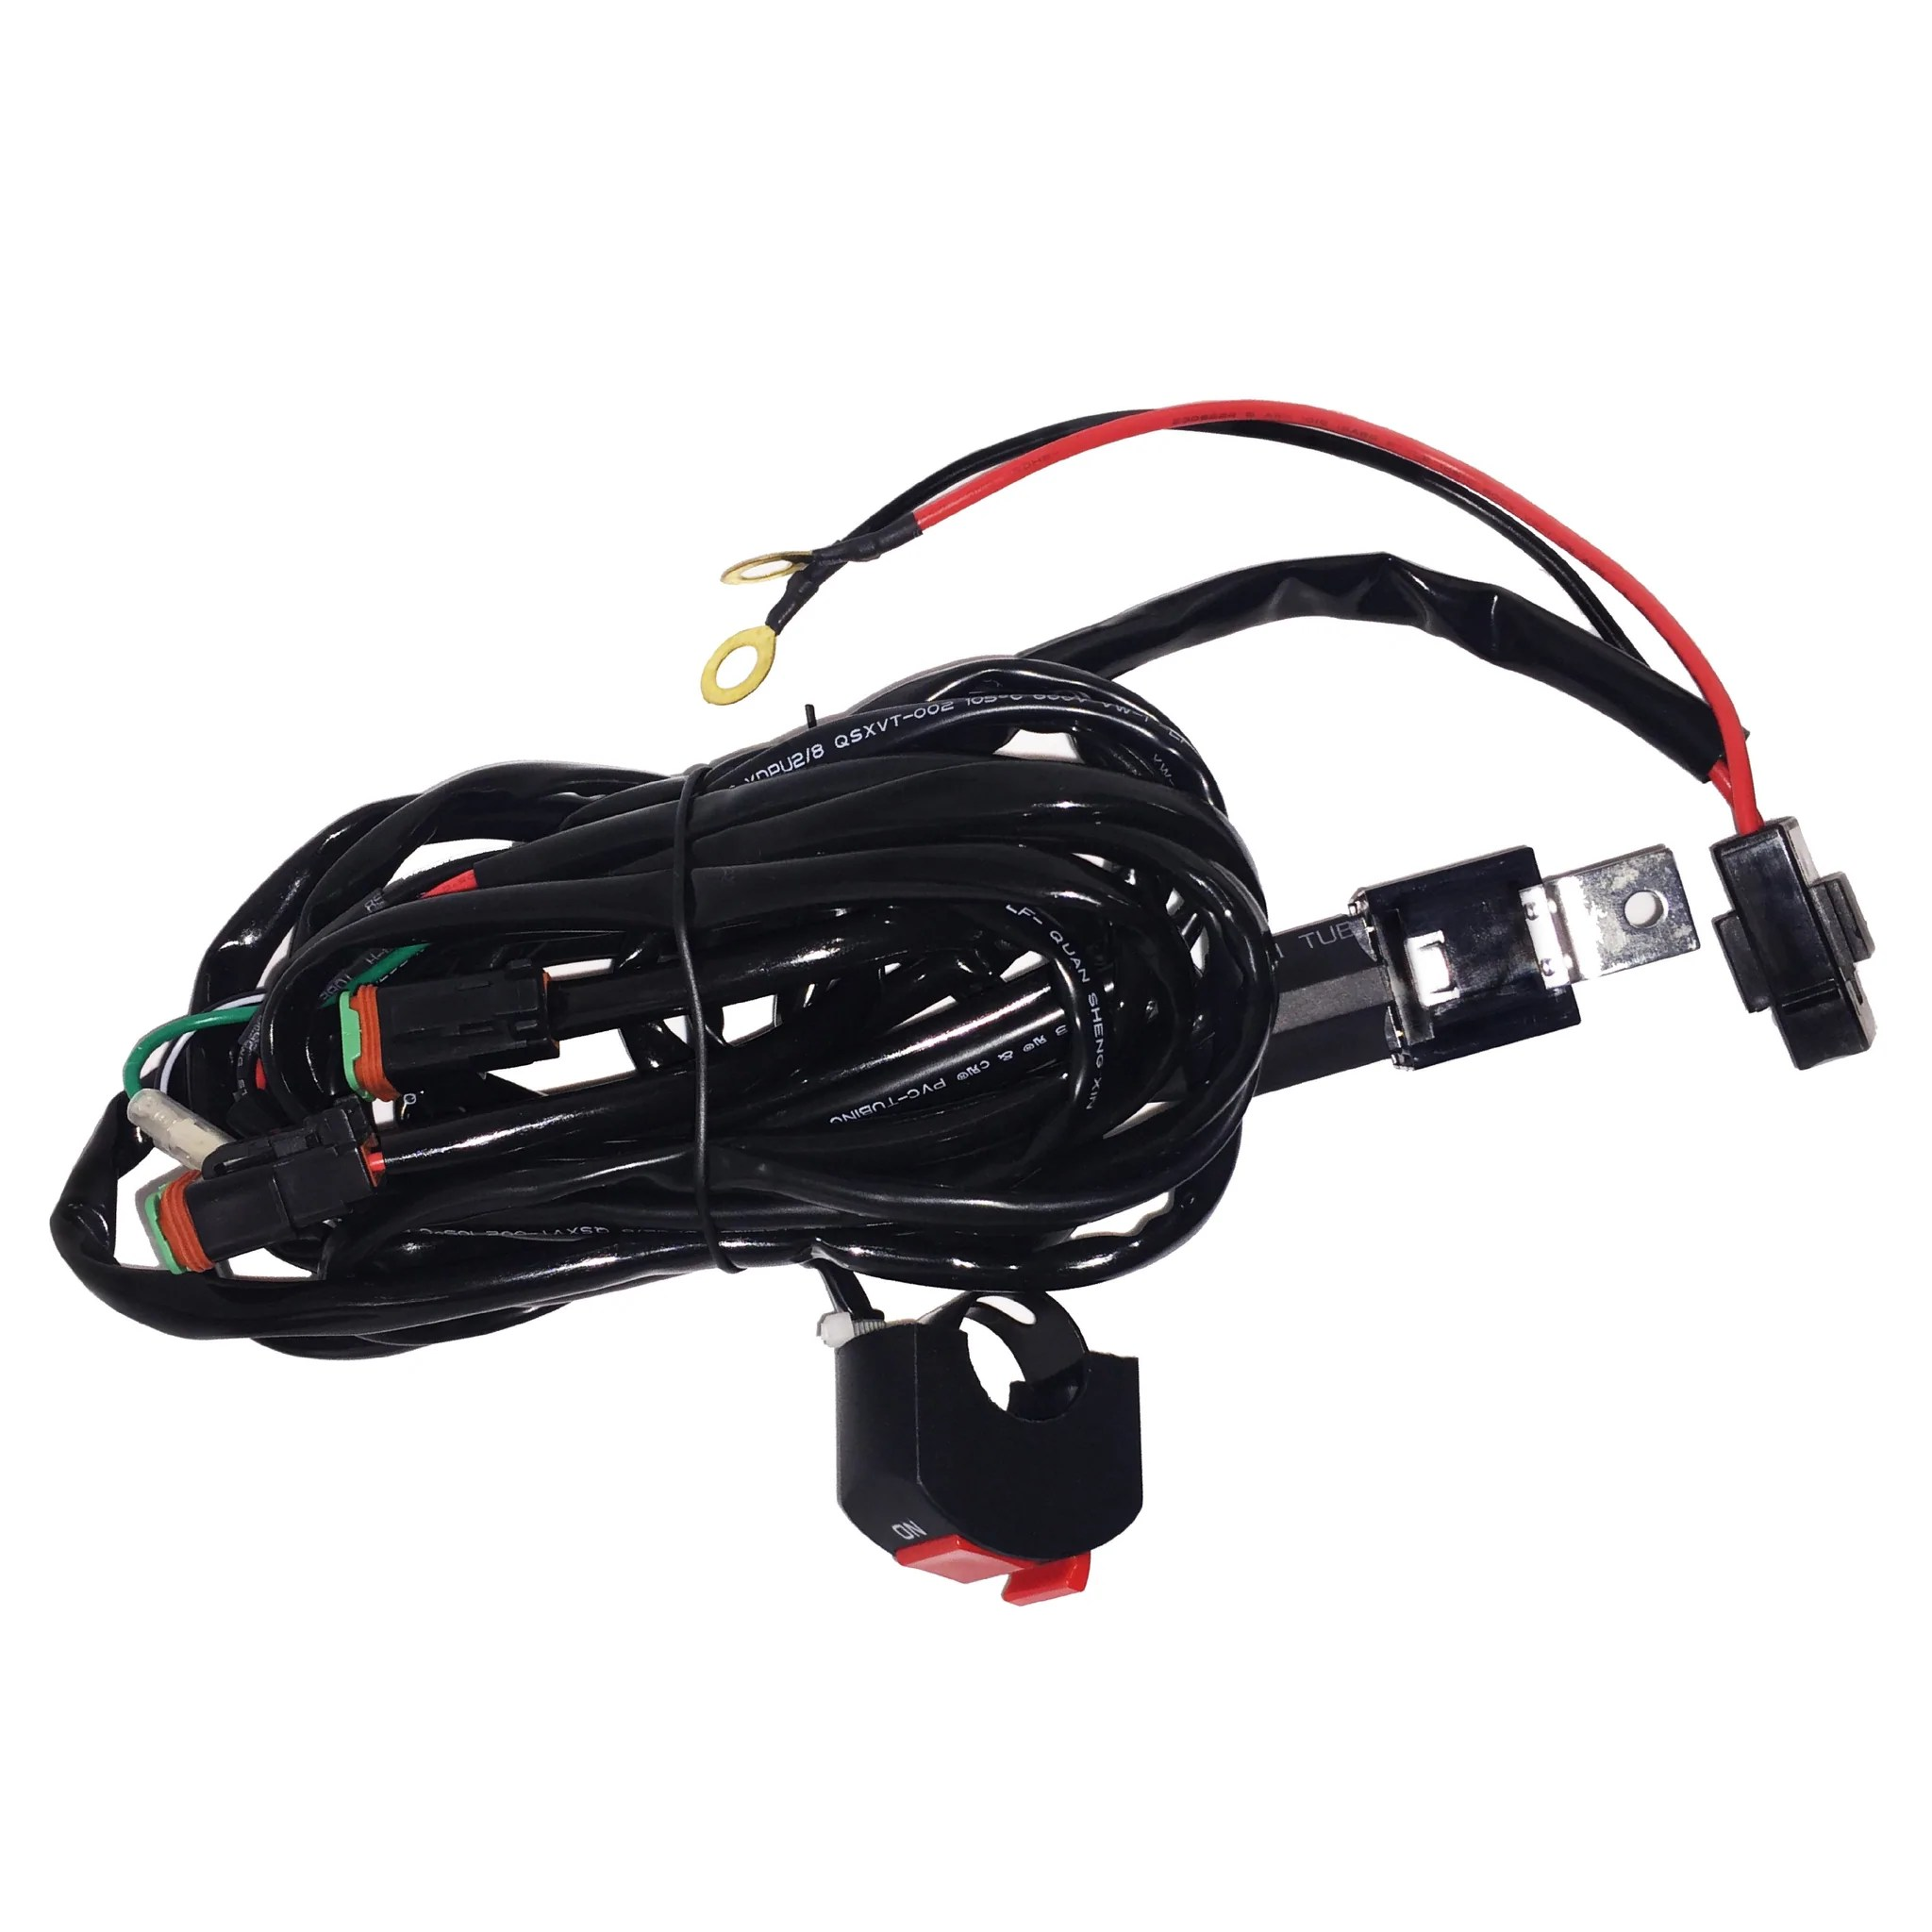 hight resolution of extreme lights motorbike relay wiring harness for 2 x 10w lights the best motorbike